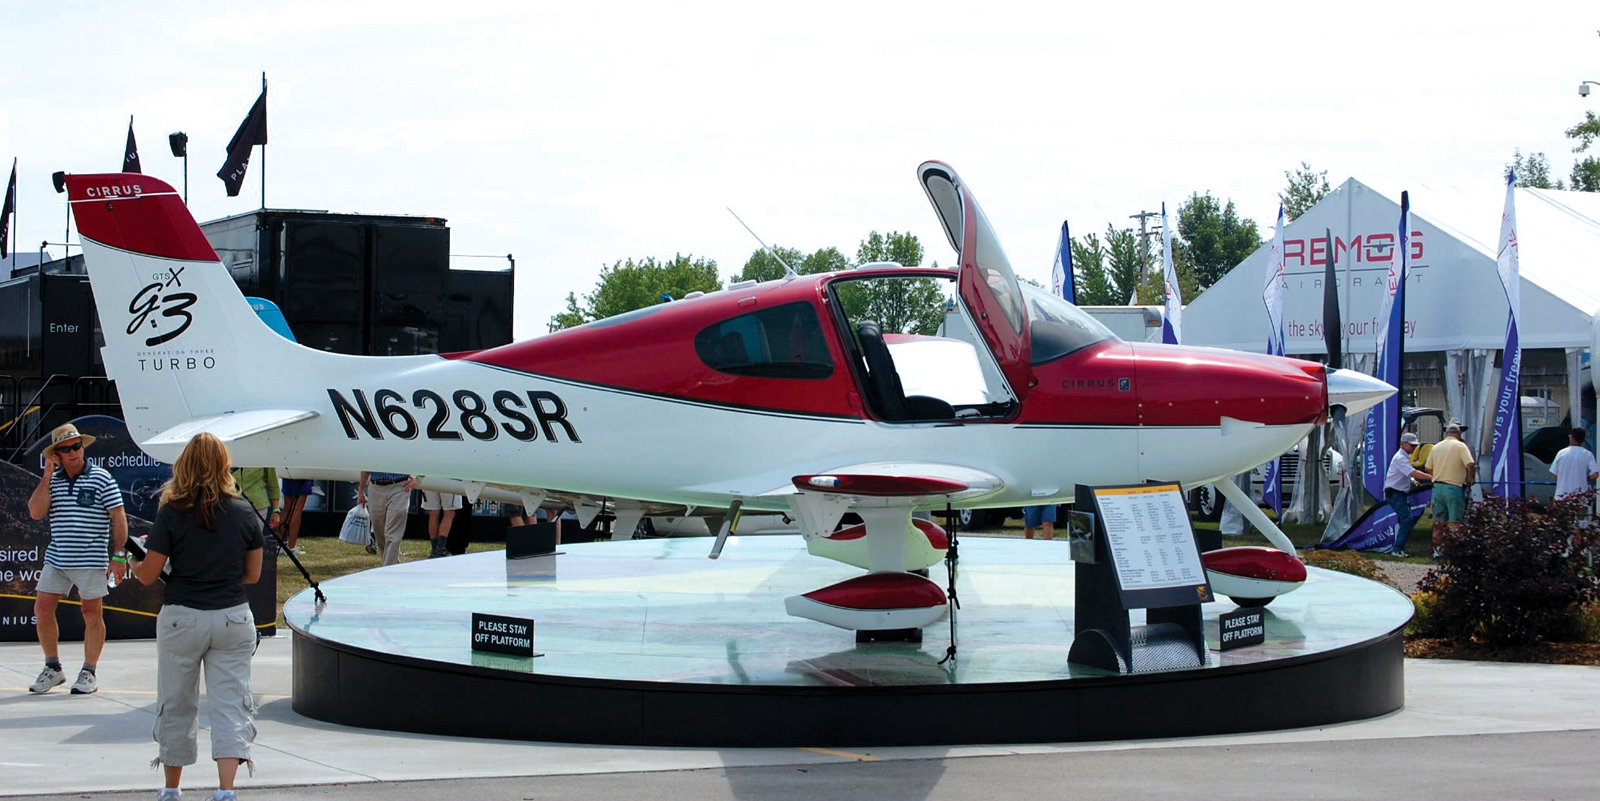 CIRRUS Begins Fleet Delivery of SR22-G3 Turbos to PlaneSmart!